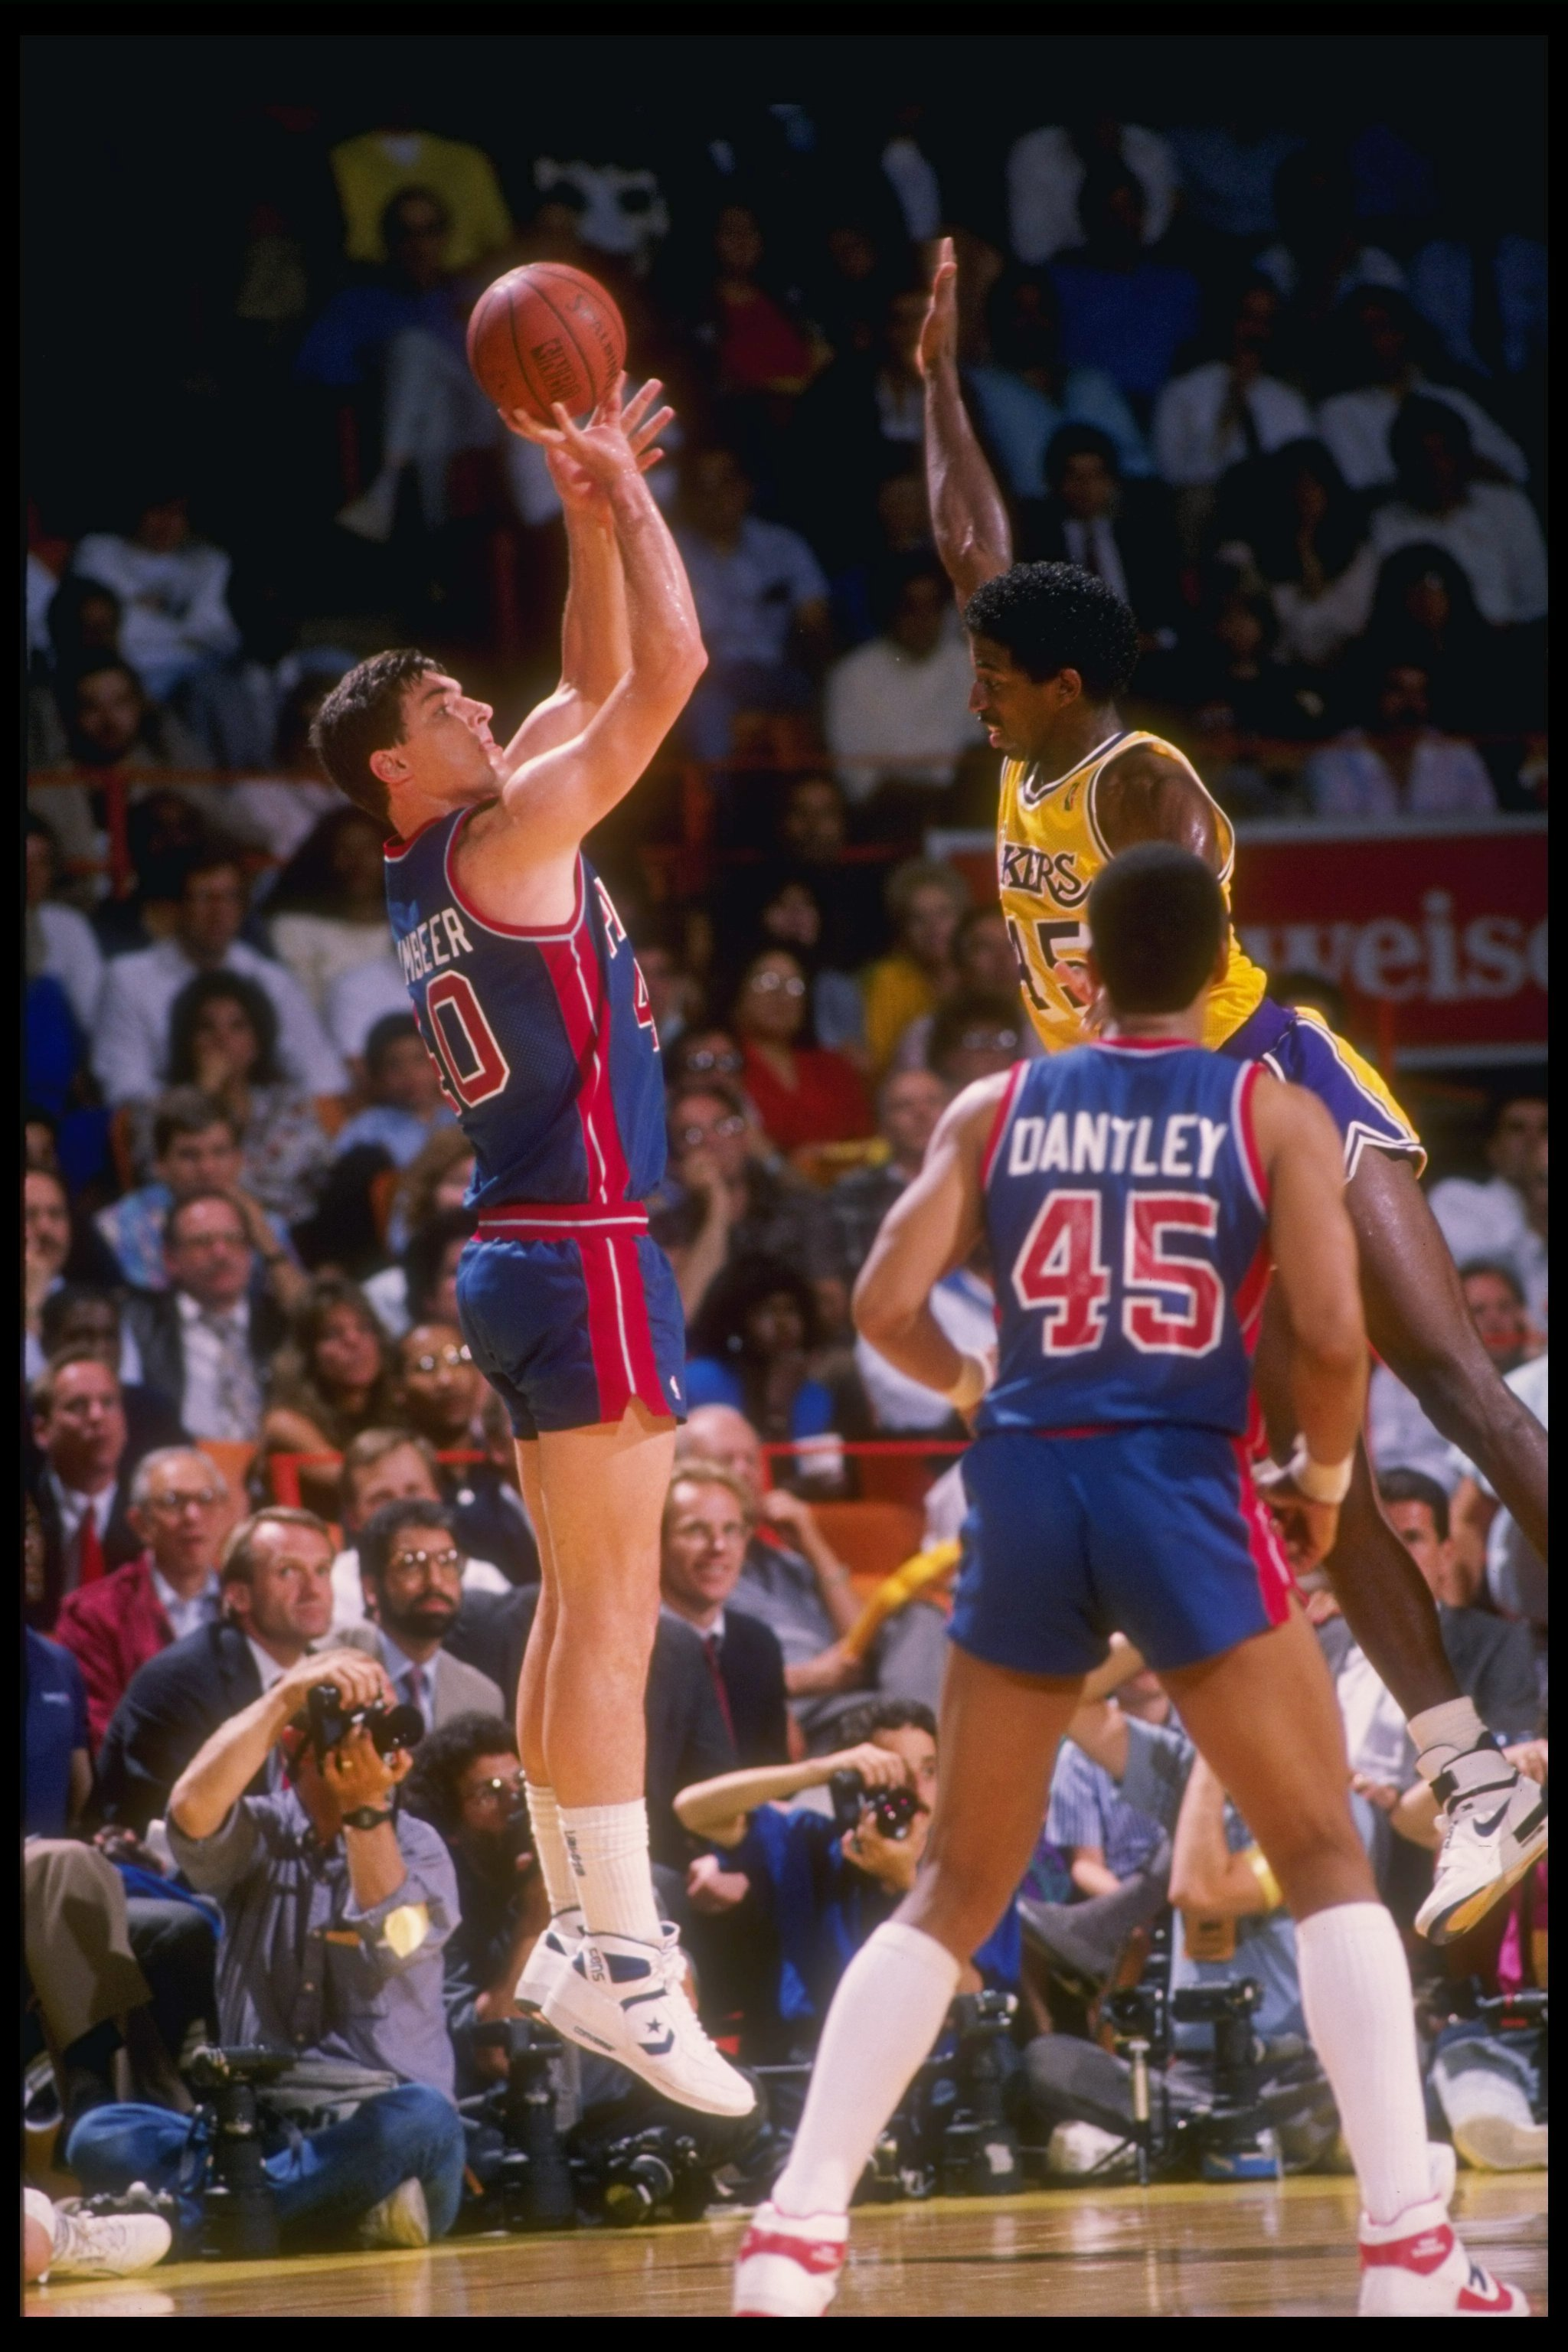 1988:  Bill Laimbeer of the Detroit Pistons shoots the ball during a game. Mandatory Credit: ALLSPORT USA  /Allsport Mandatory Credit: ALLSPORT USA  /Allsport